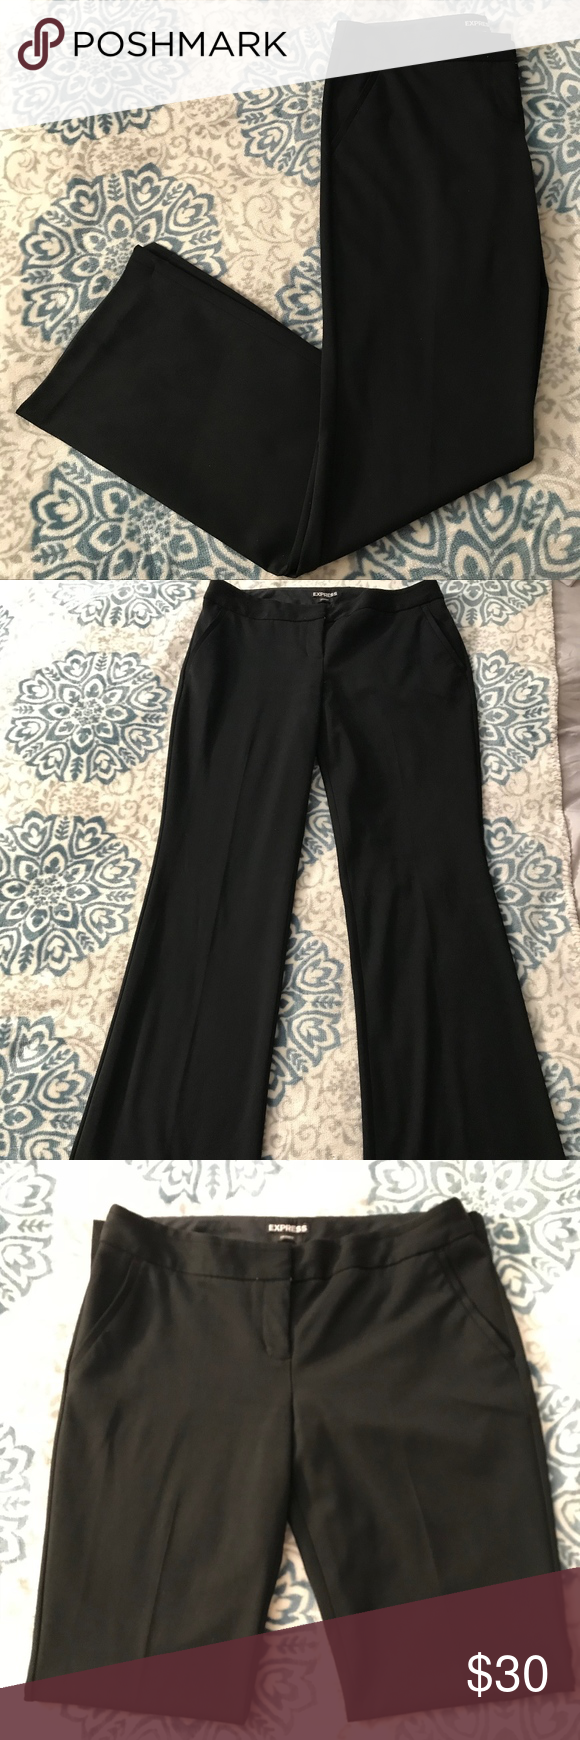 Express Mid Rise Barely Boot Columnist Pants Express Black Mid Rise Barely Boot Columnist Pants. In good condition. I loved these pants but unfortunately they no longer fit me. Plenty of life left in them! Express Pants